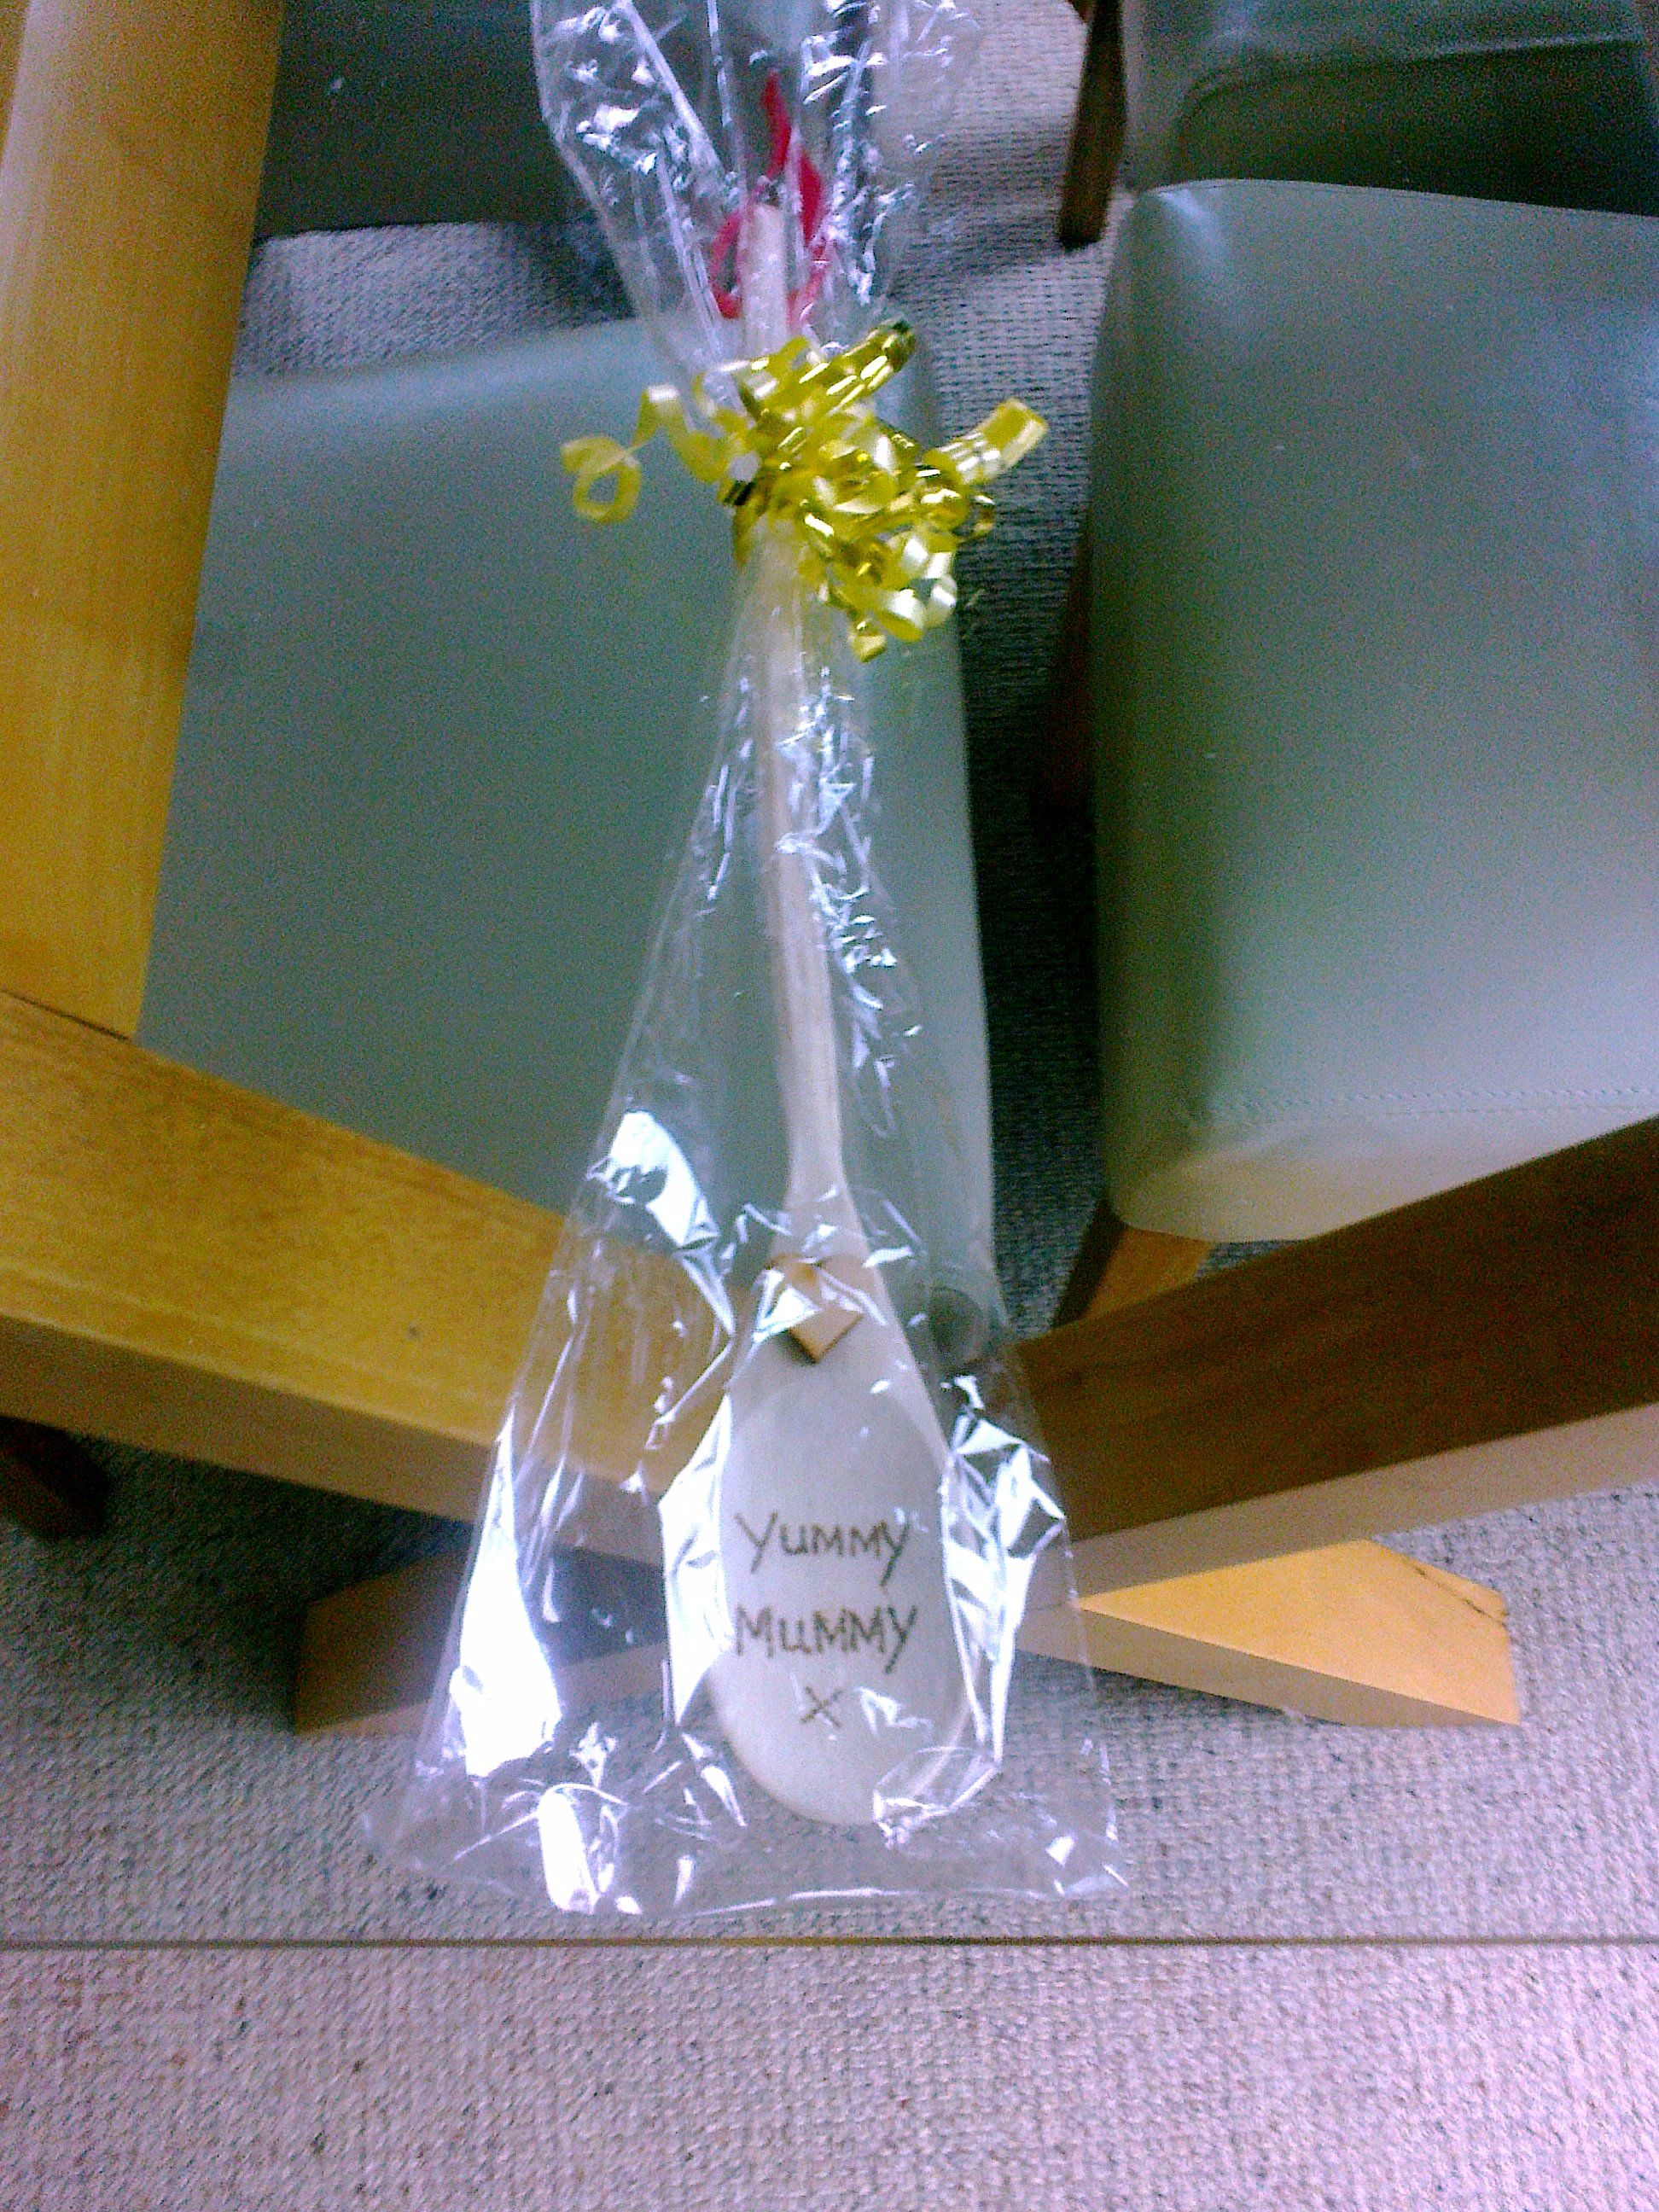 Wooden spoon for a yummy mummy